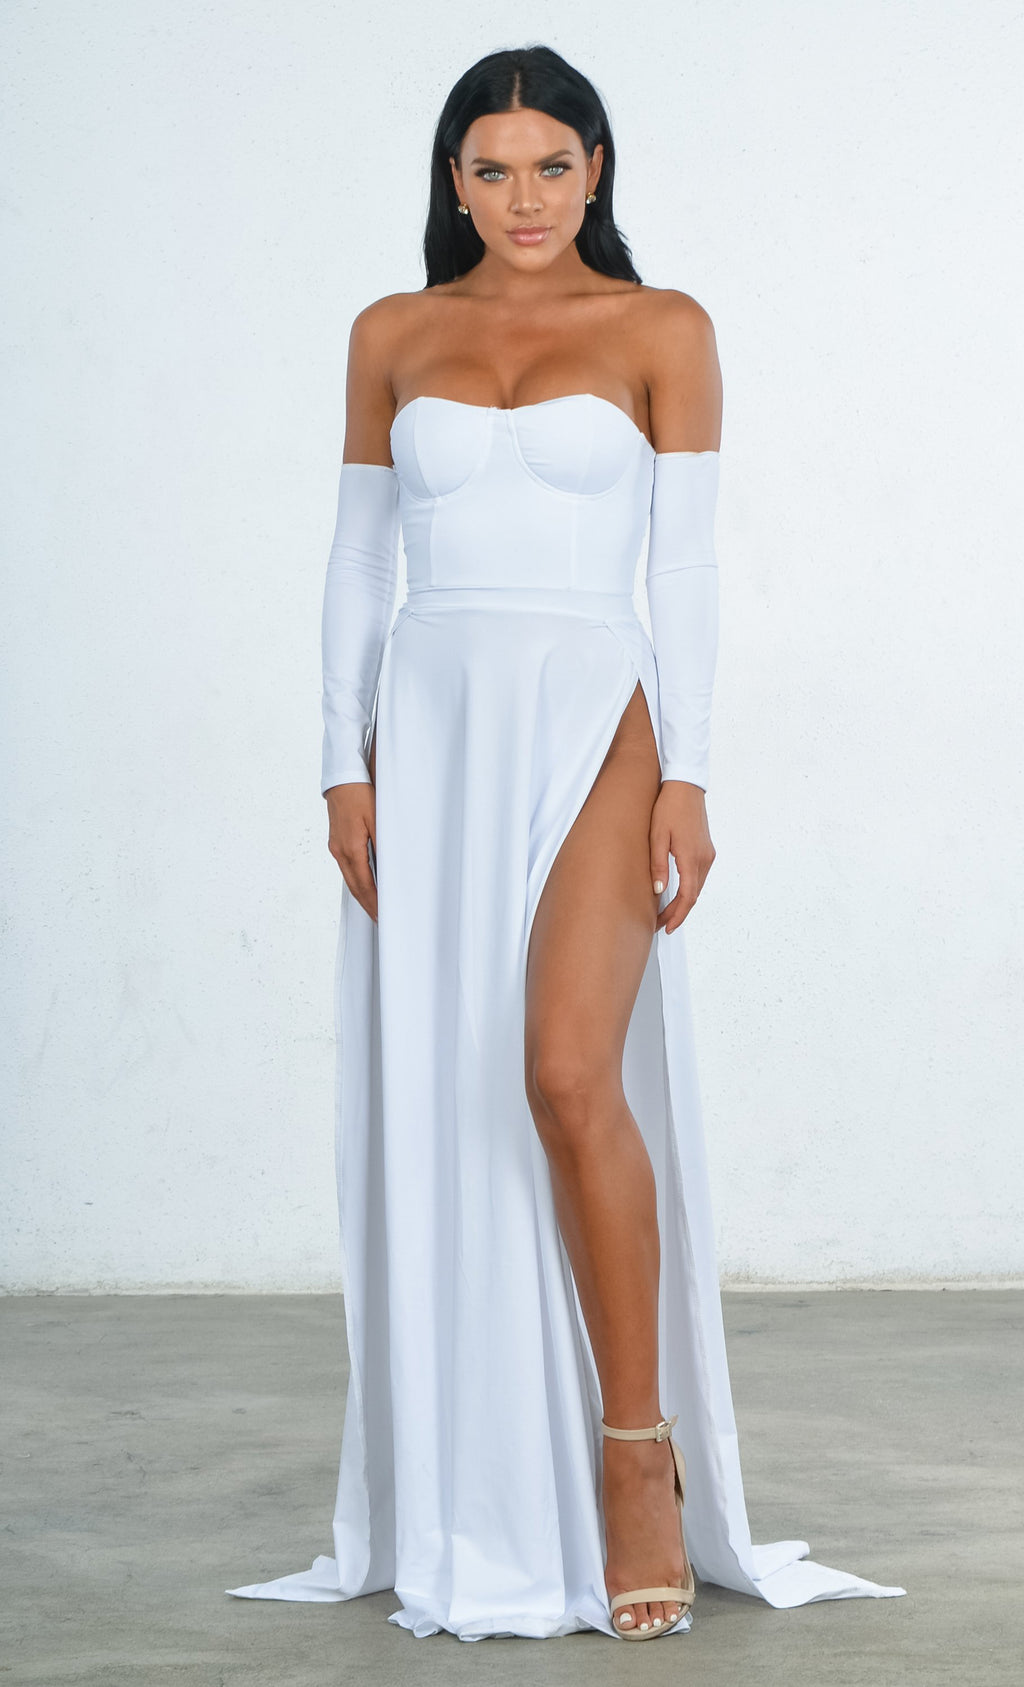 Indie XO You're An Angel White Double Slit Off the Shoulder Bustier Long Sleeve Maxi Gown Dress - 2 Colors Available